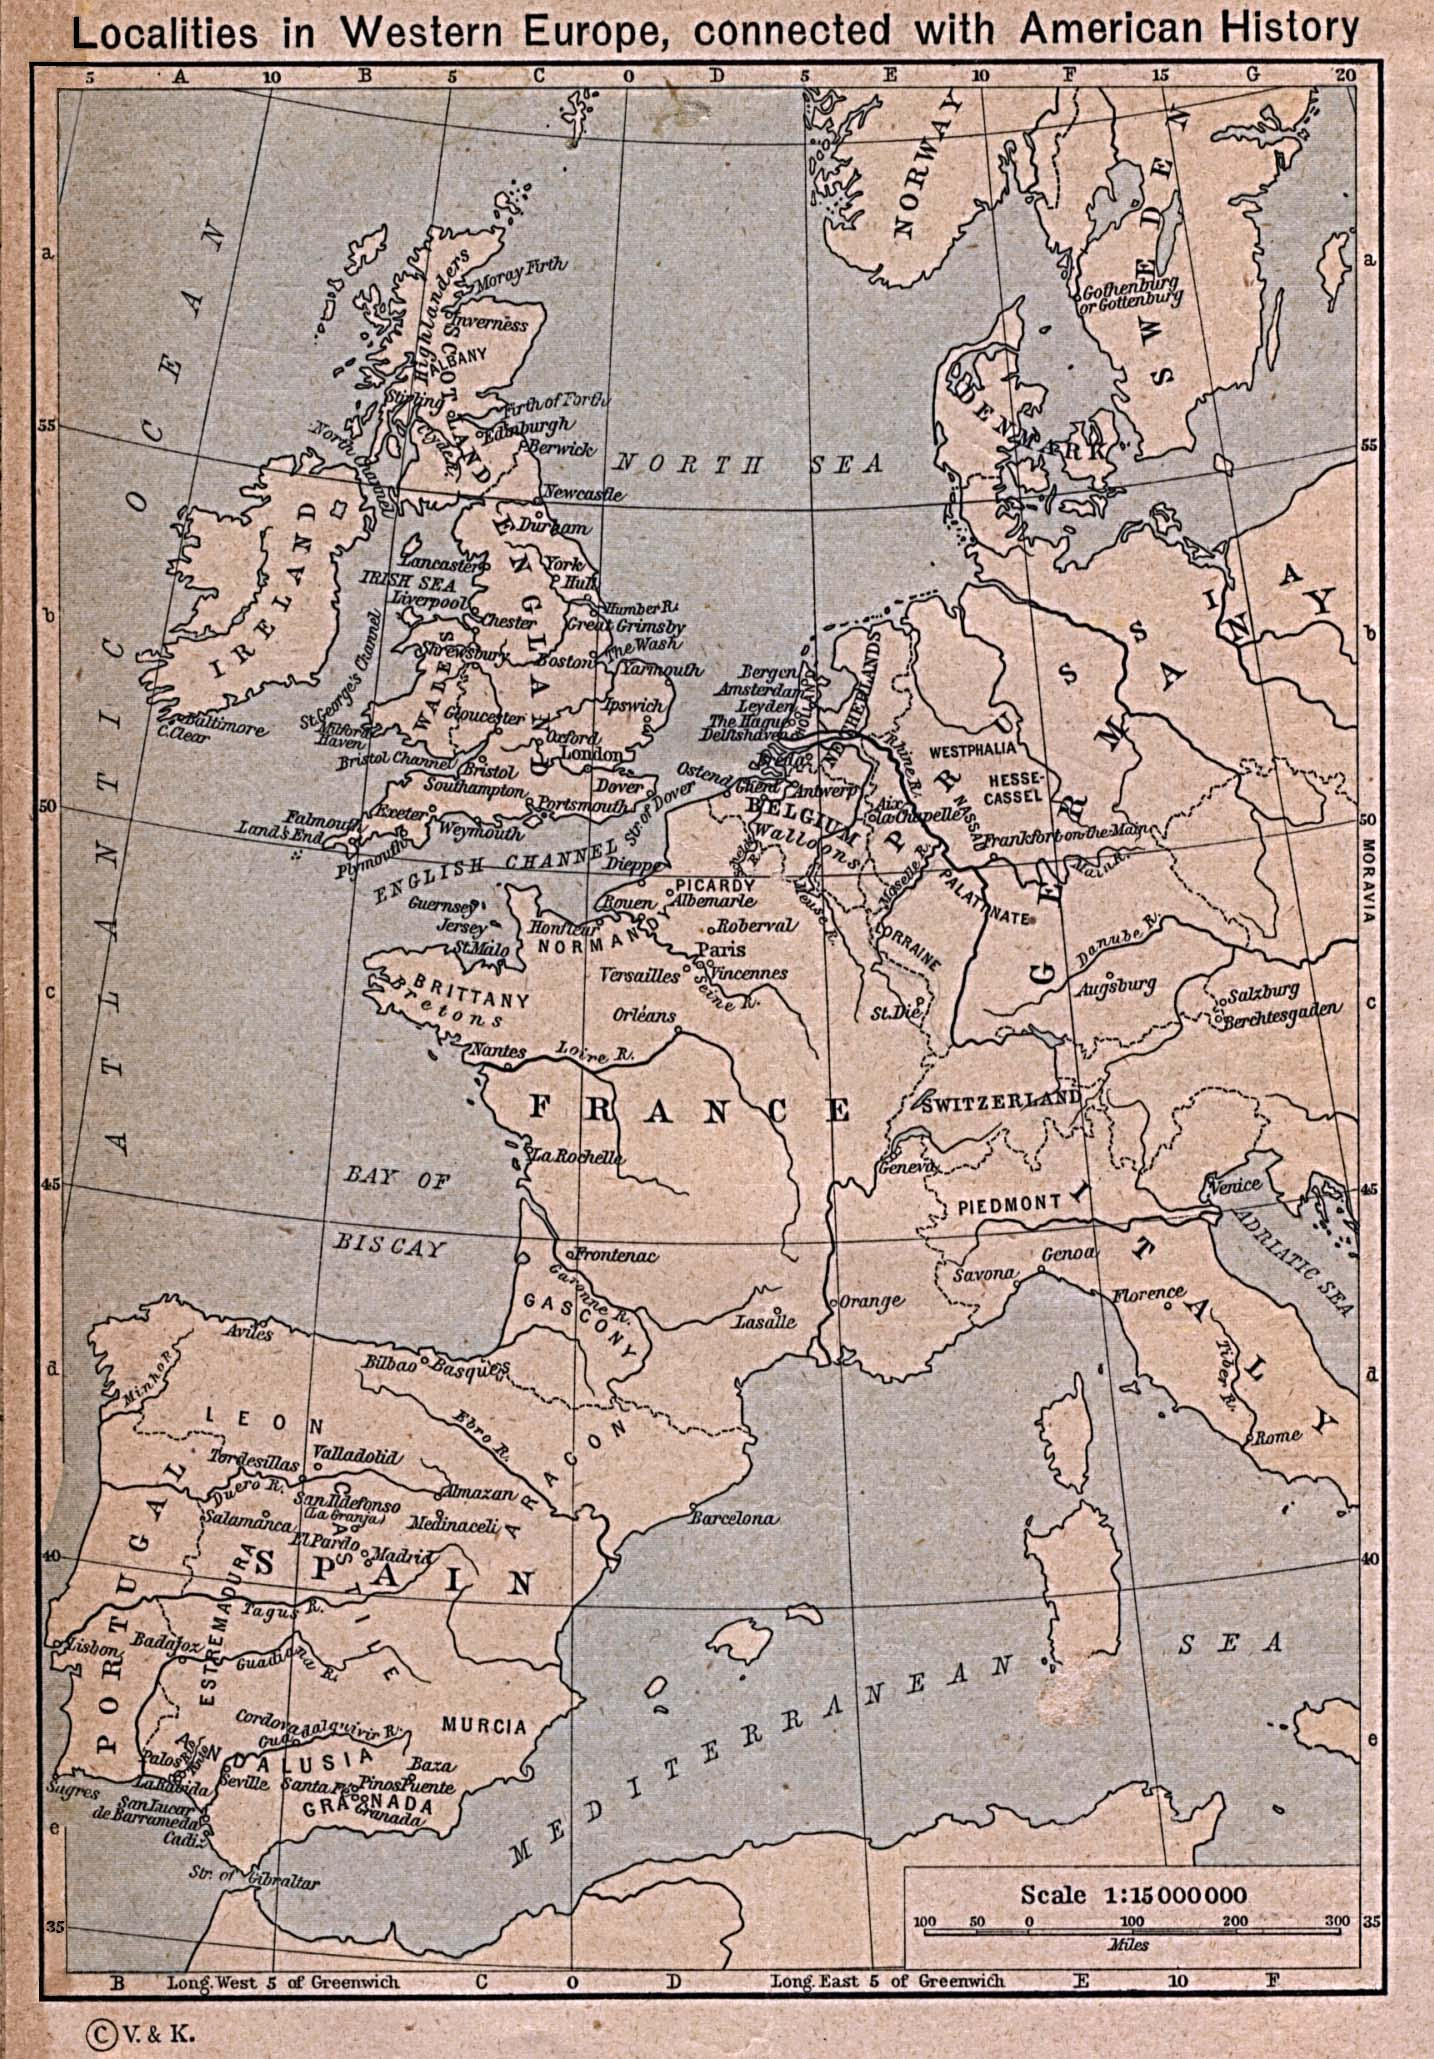 Historical Maps of Europe. Localities in Western Europe connected with American History (519K) From The Historical Atlas by William R. Shepherd, 1923.